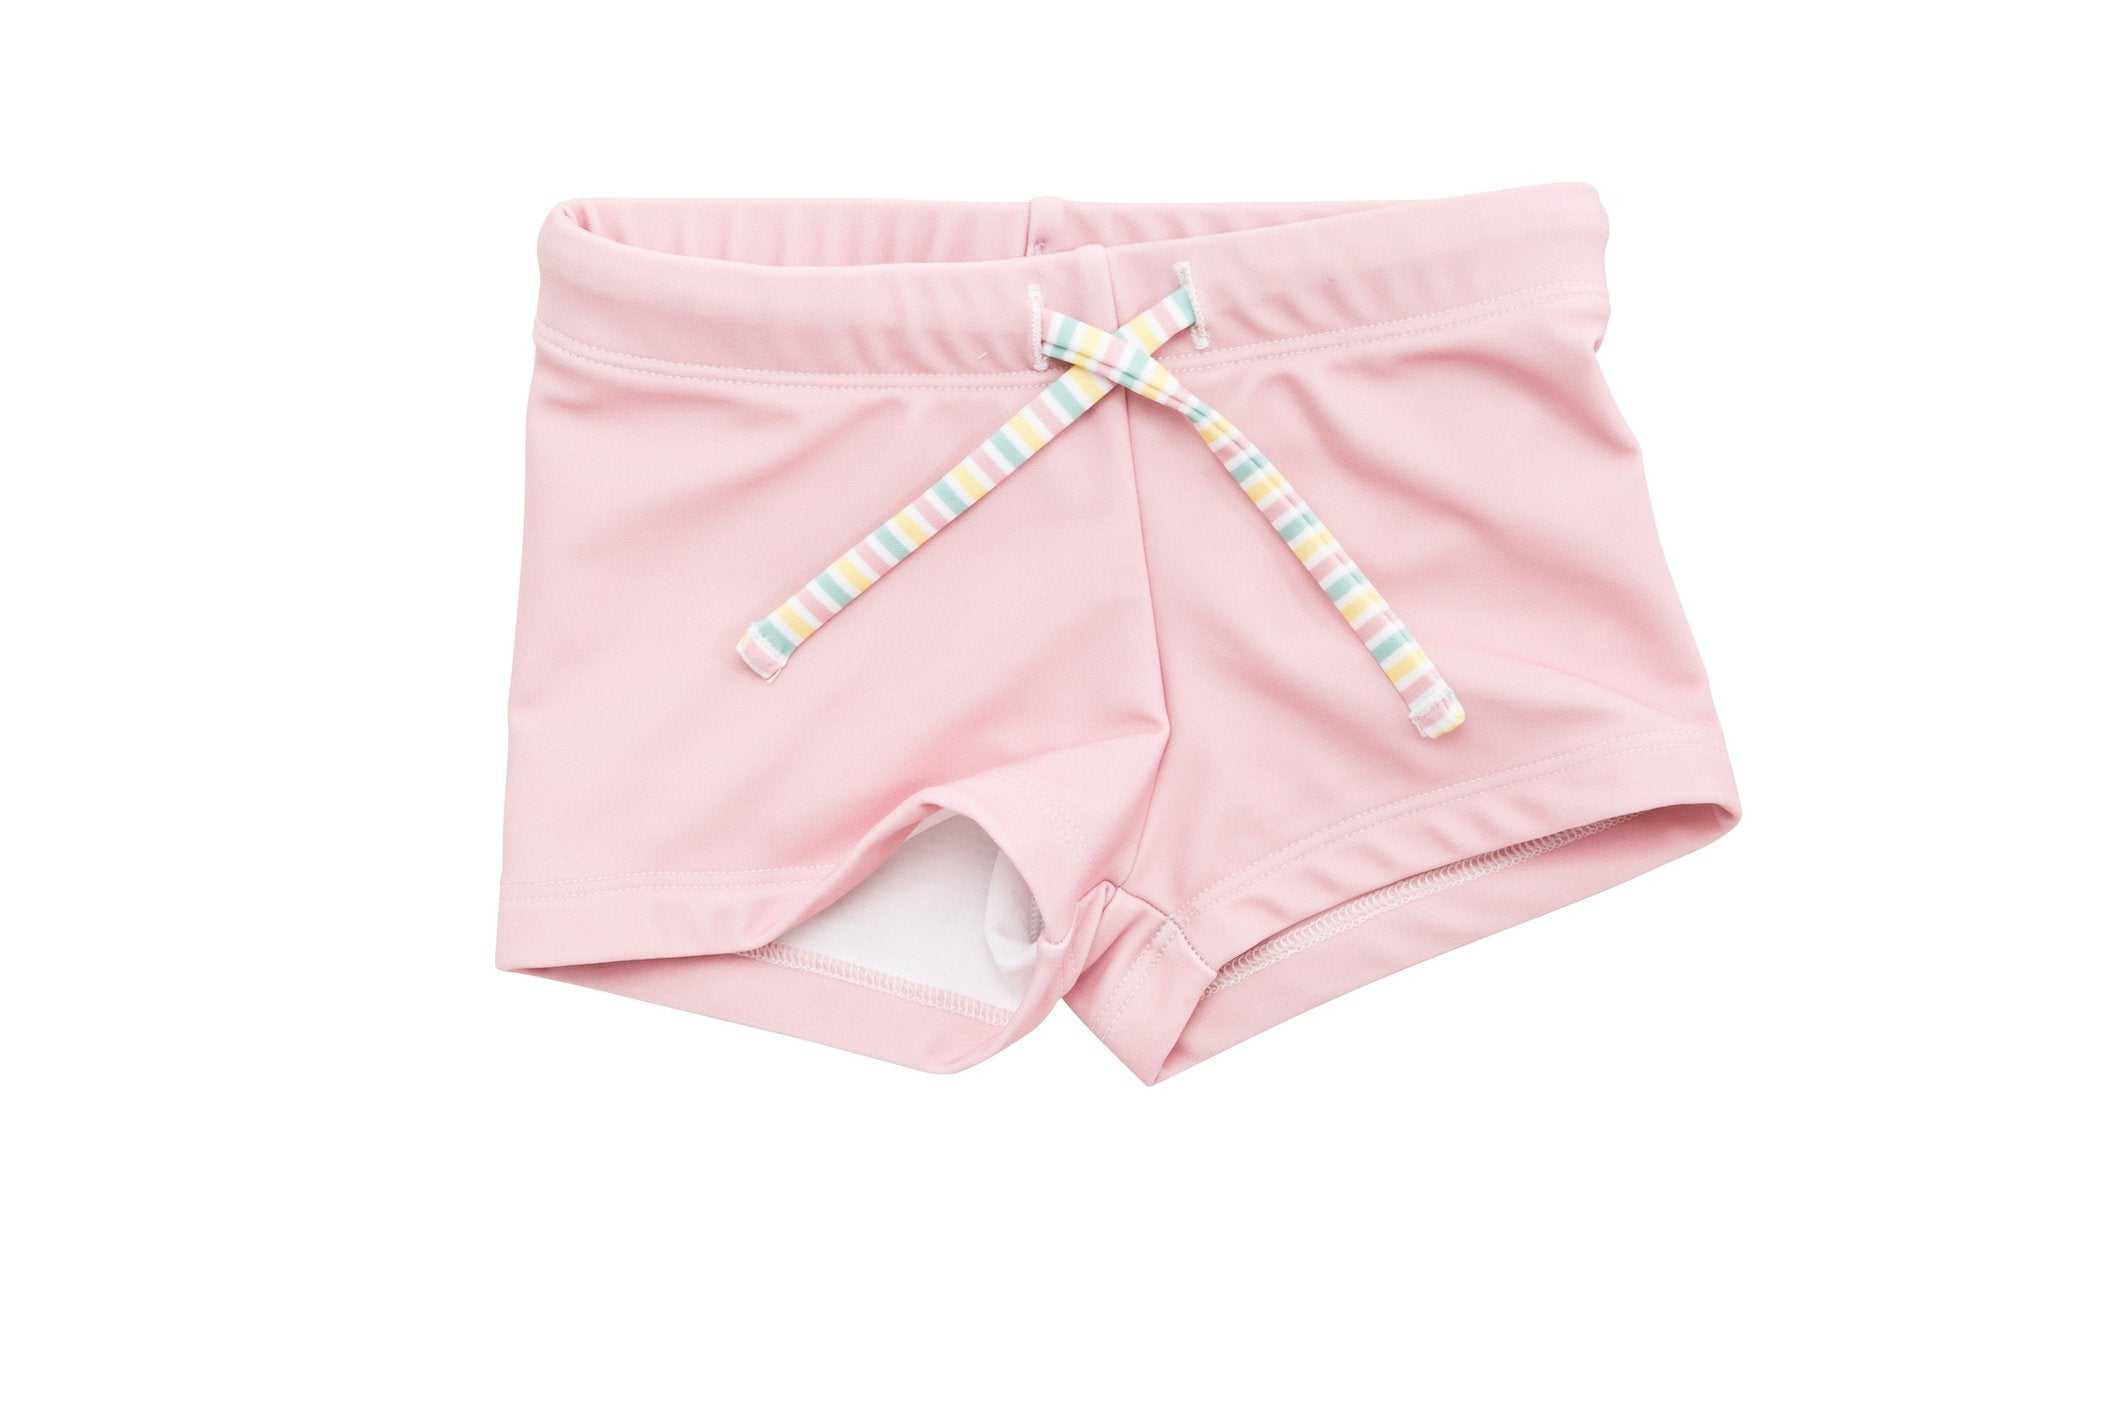 Palm Cove Pink Budgie Brief